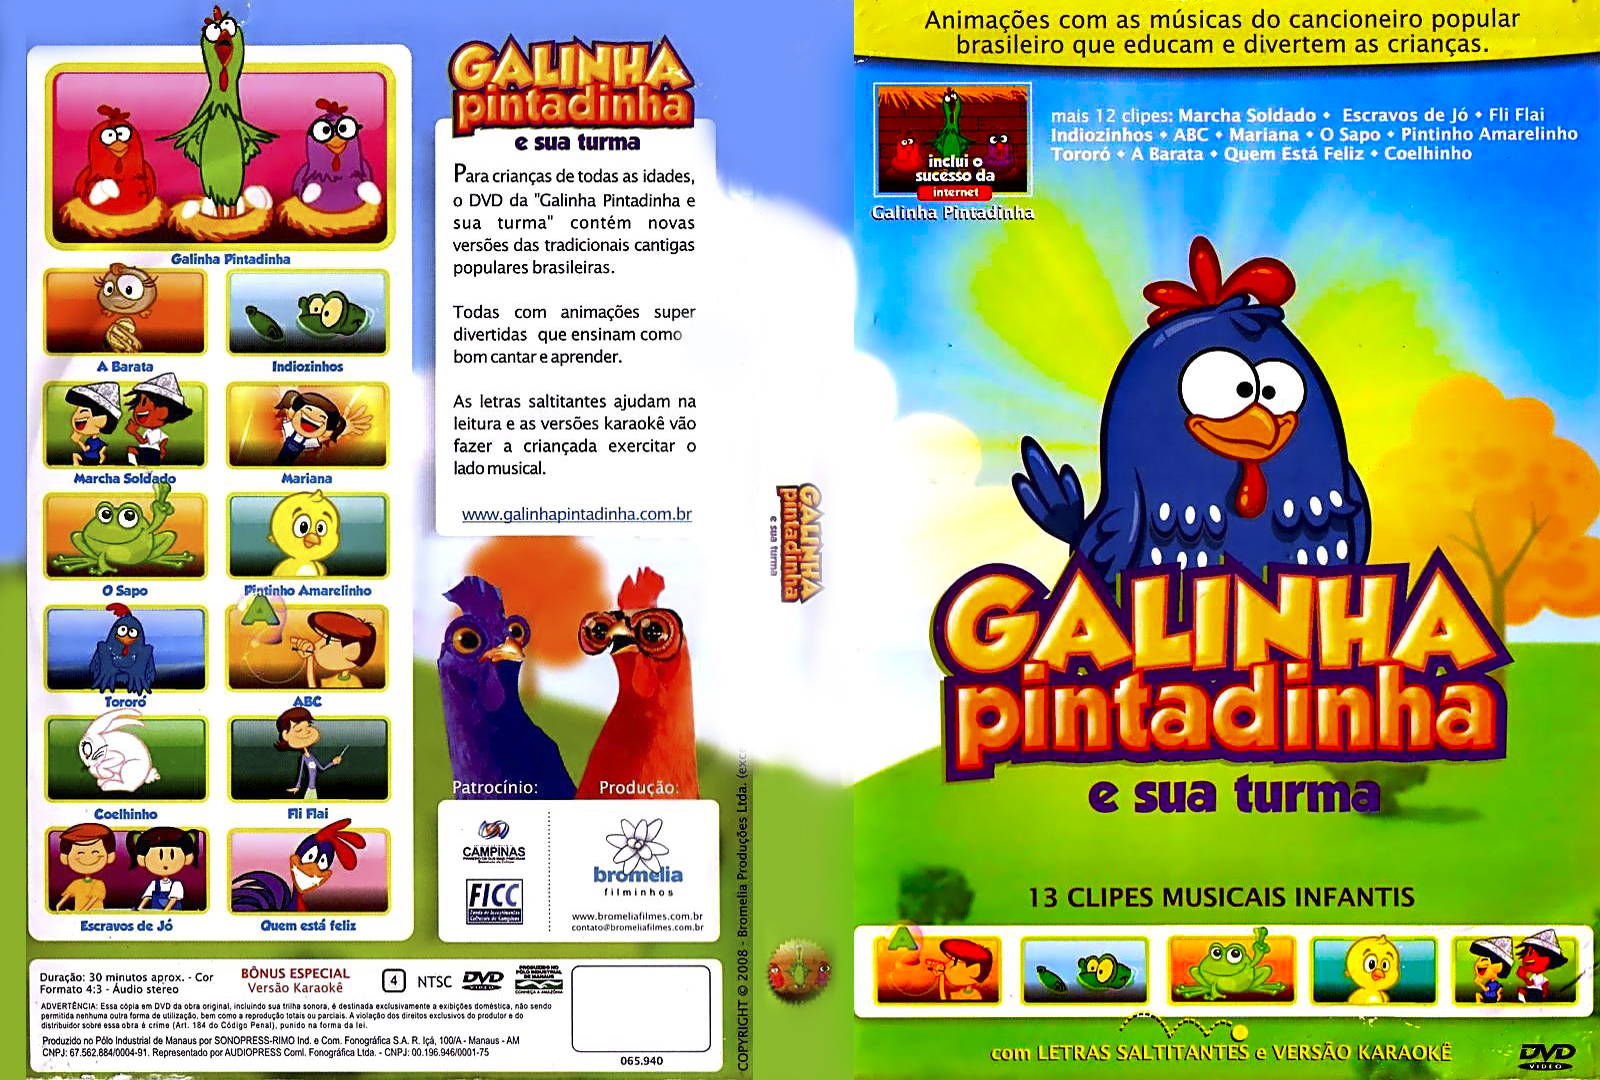 a galinha pintadinha 3 avi videos